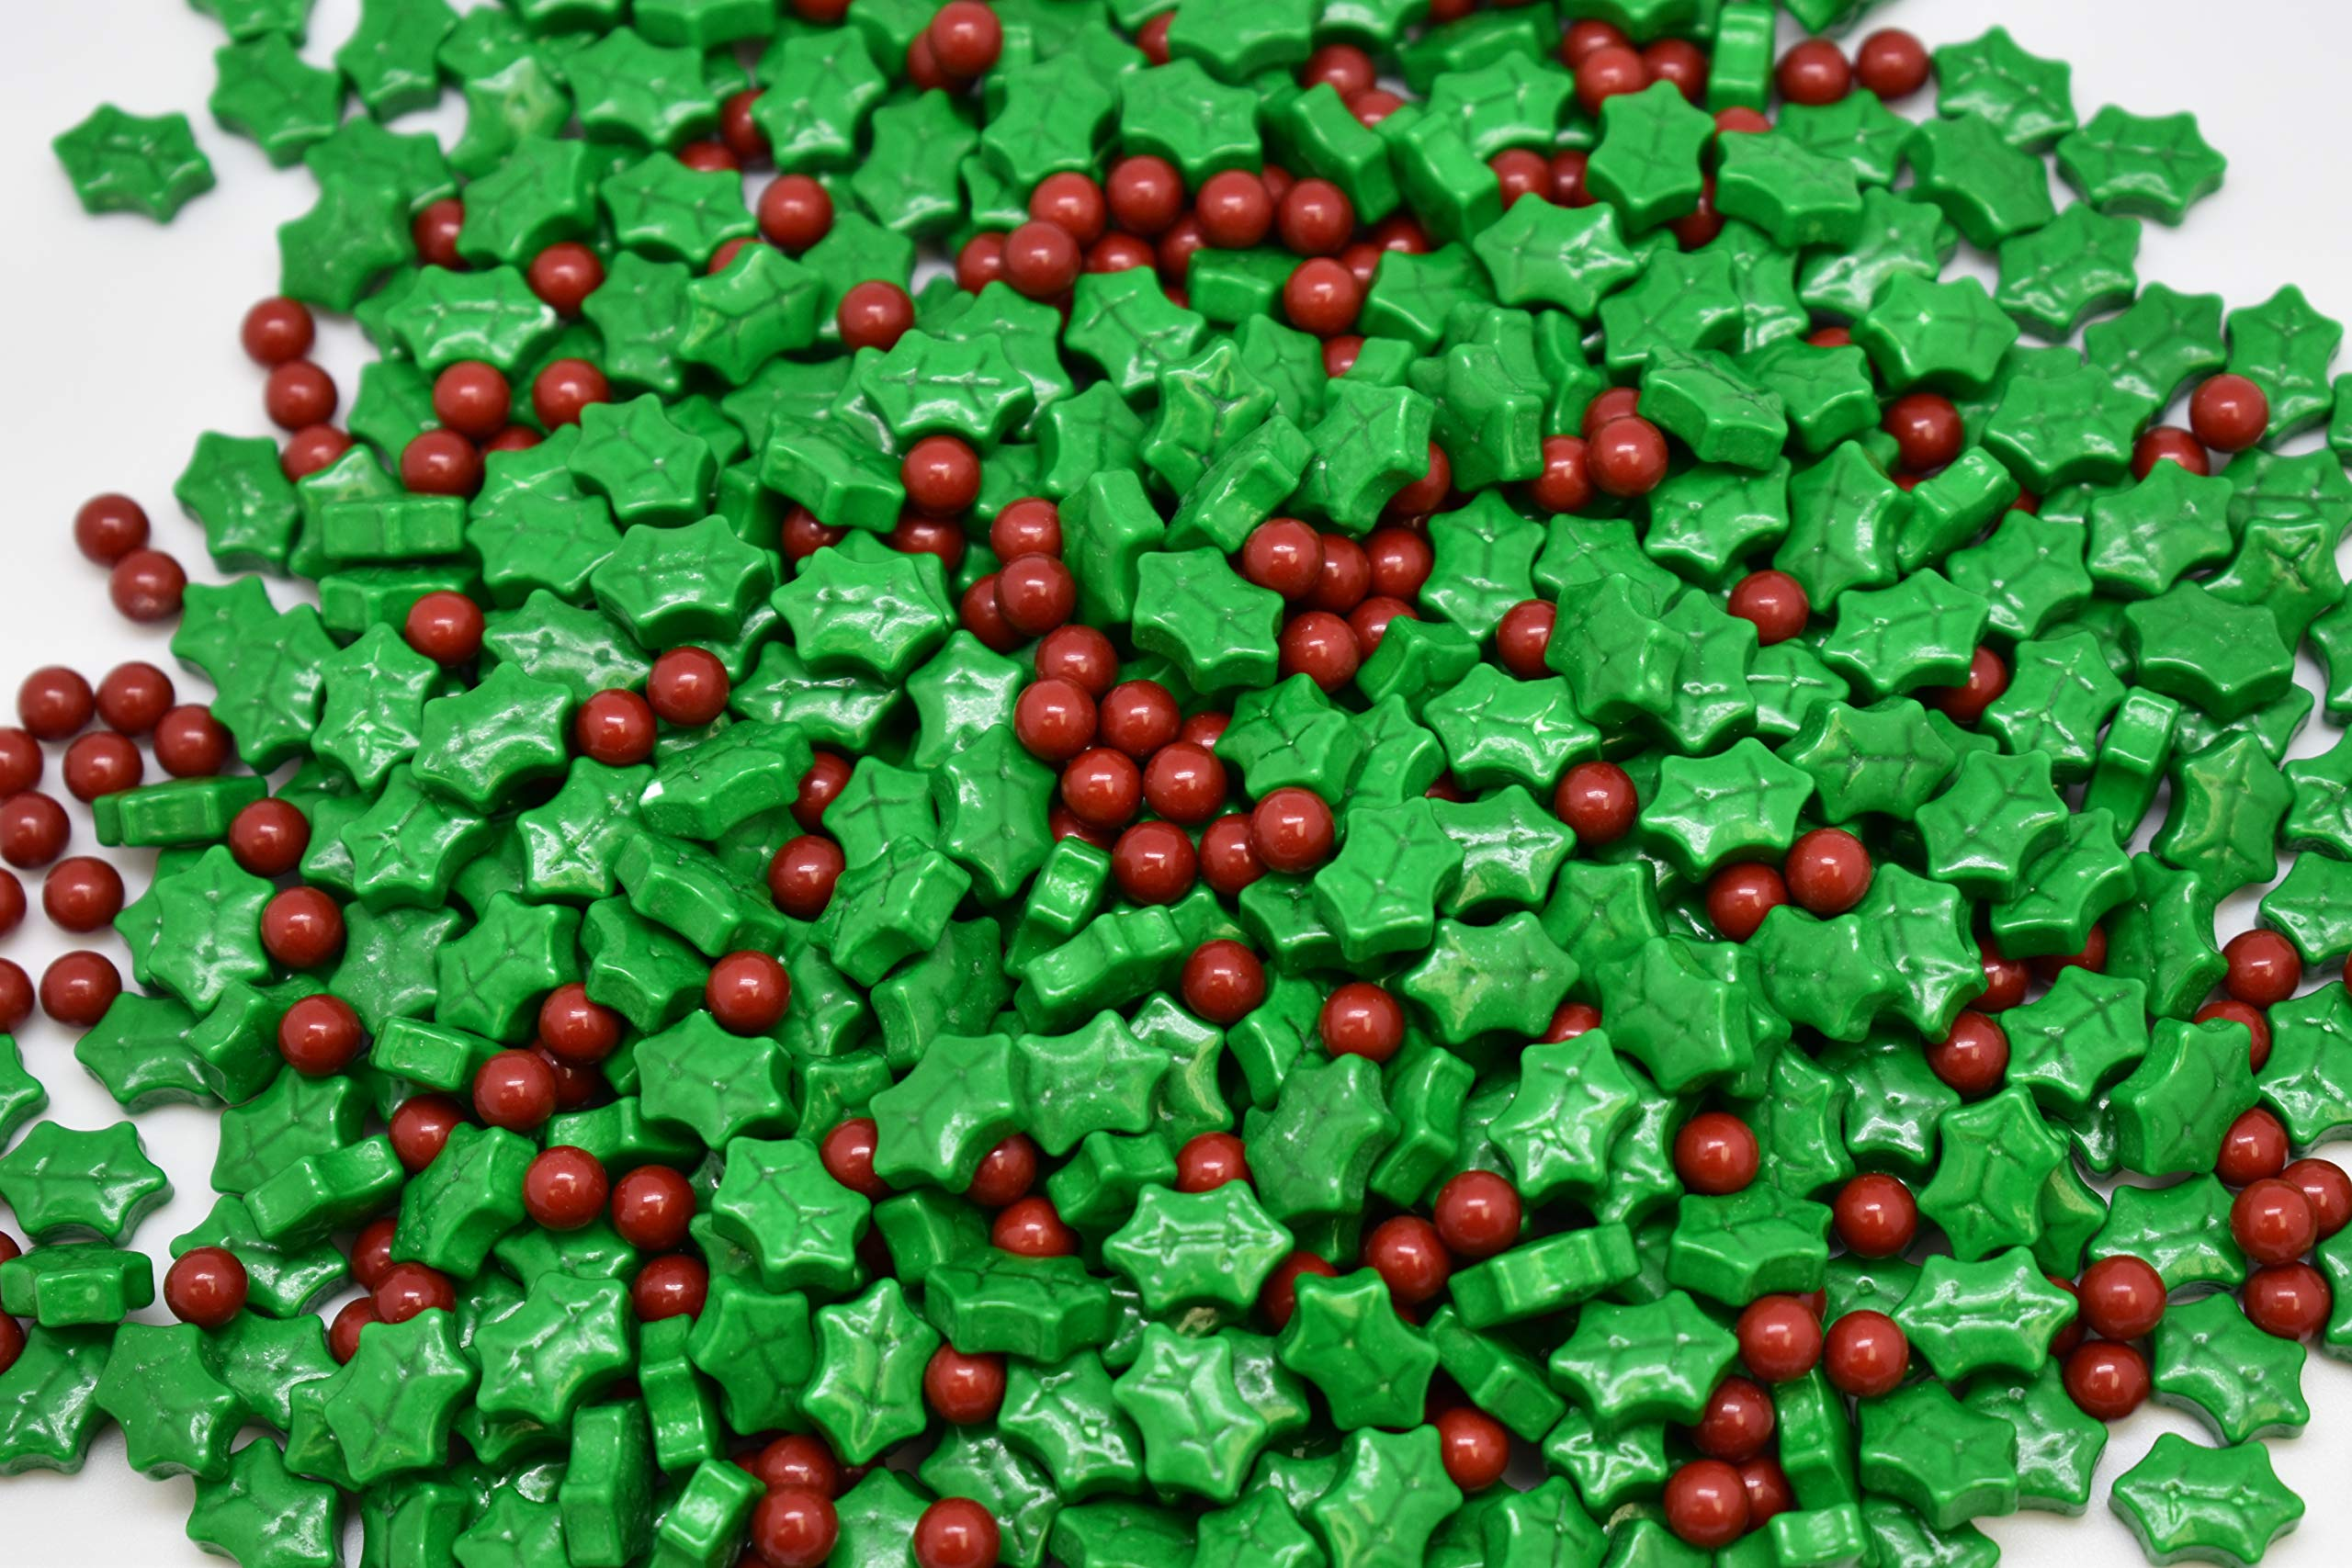 Dextrose Holly Berry Blend Sprinkle Mix - 8 oz Resealable Stand Up Bag - Christmas Themed Red and Green Sprinkles - Holiday Sprinkles for Desserts and Baked Goods